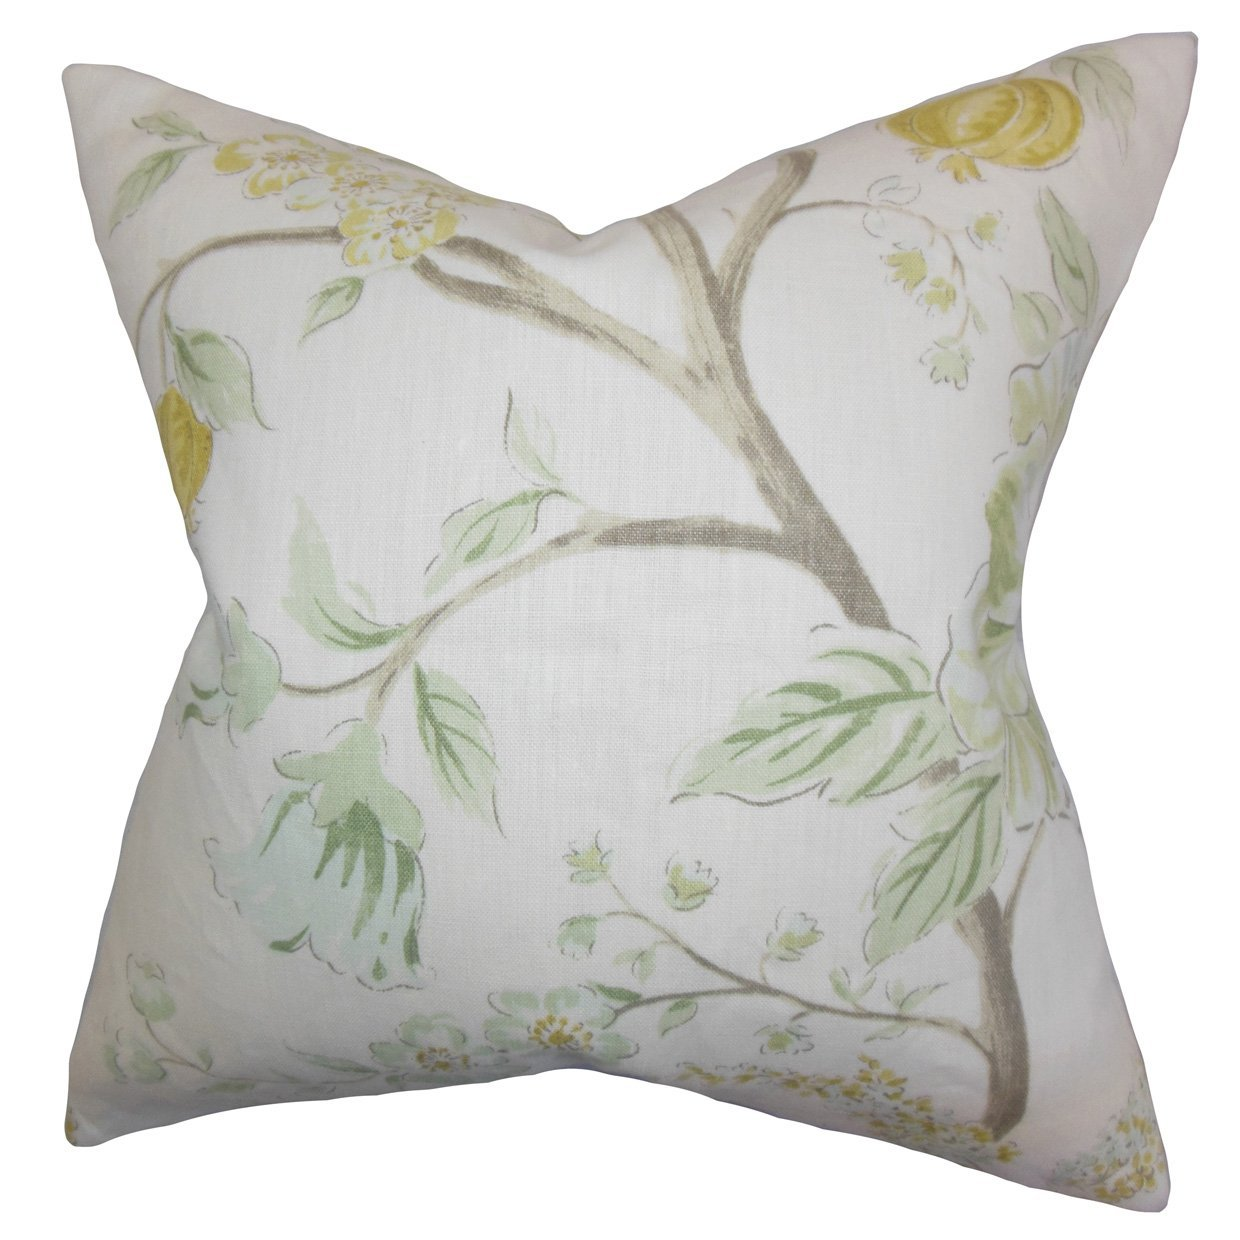 The Pillow Collection Ivria Floral Bedding Sham Meadow Standard//20 x 26